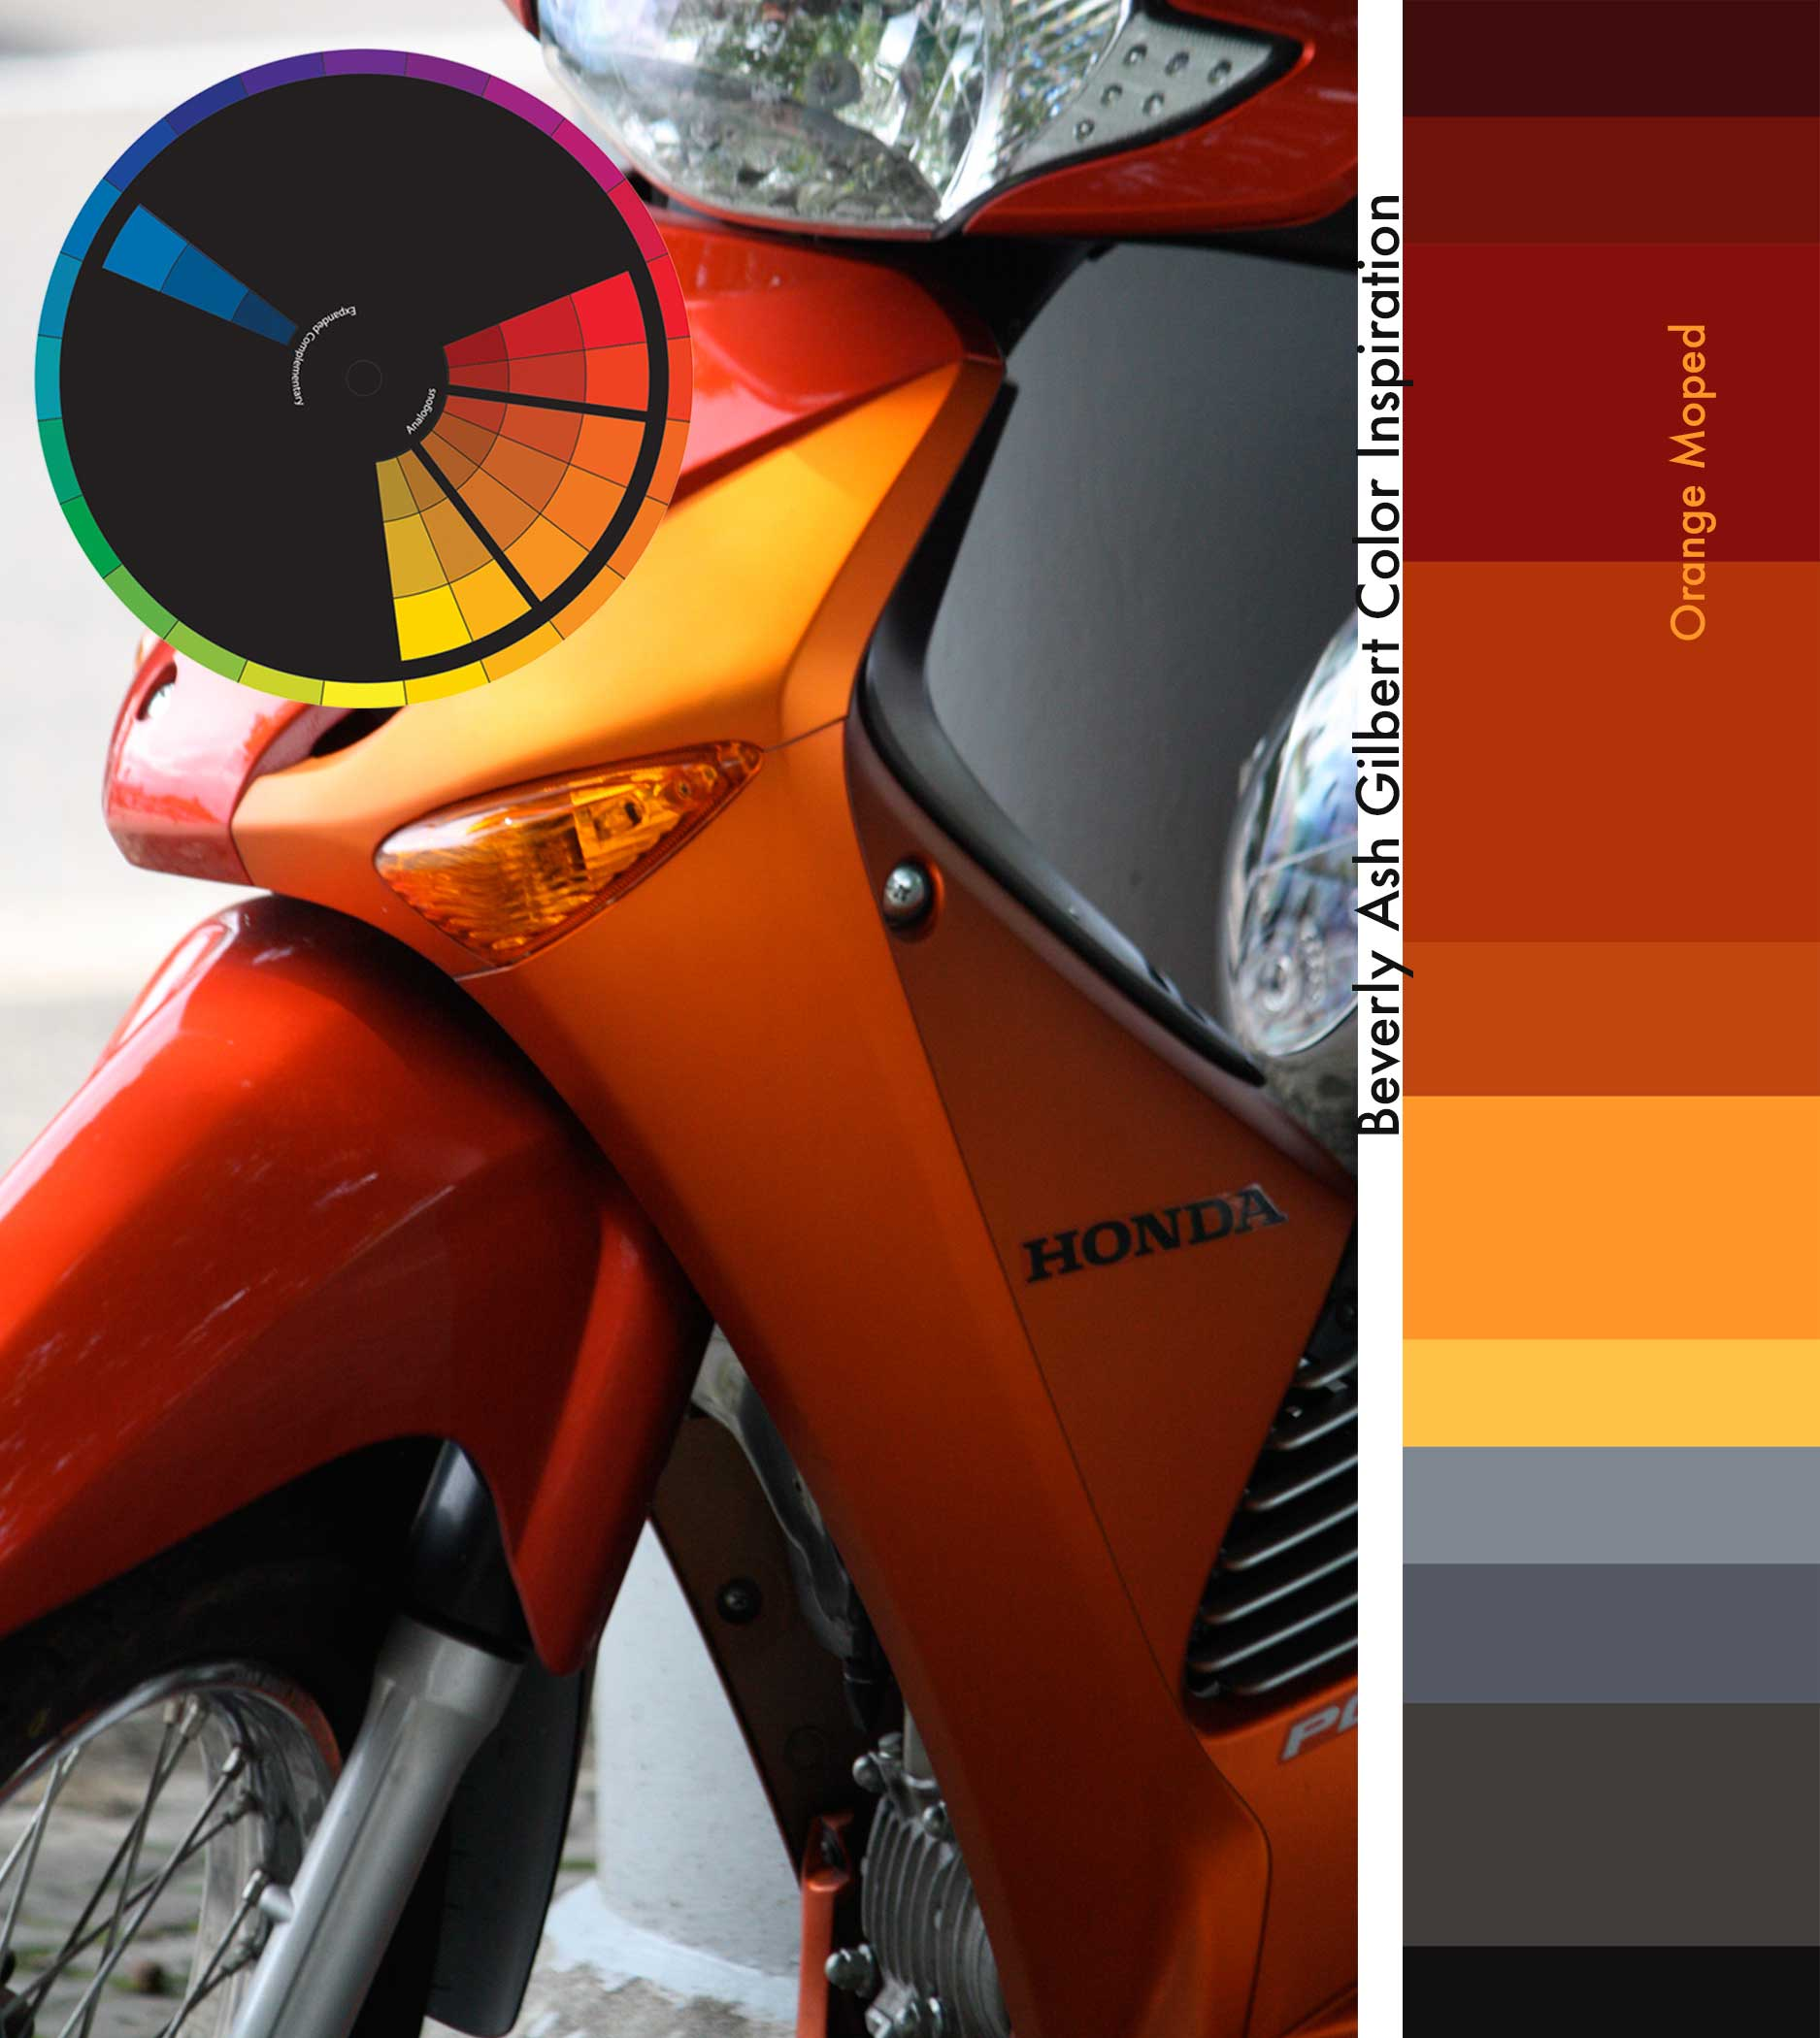 ColorInspiration_OrangeMoped_small.jpg